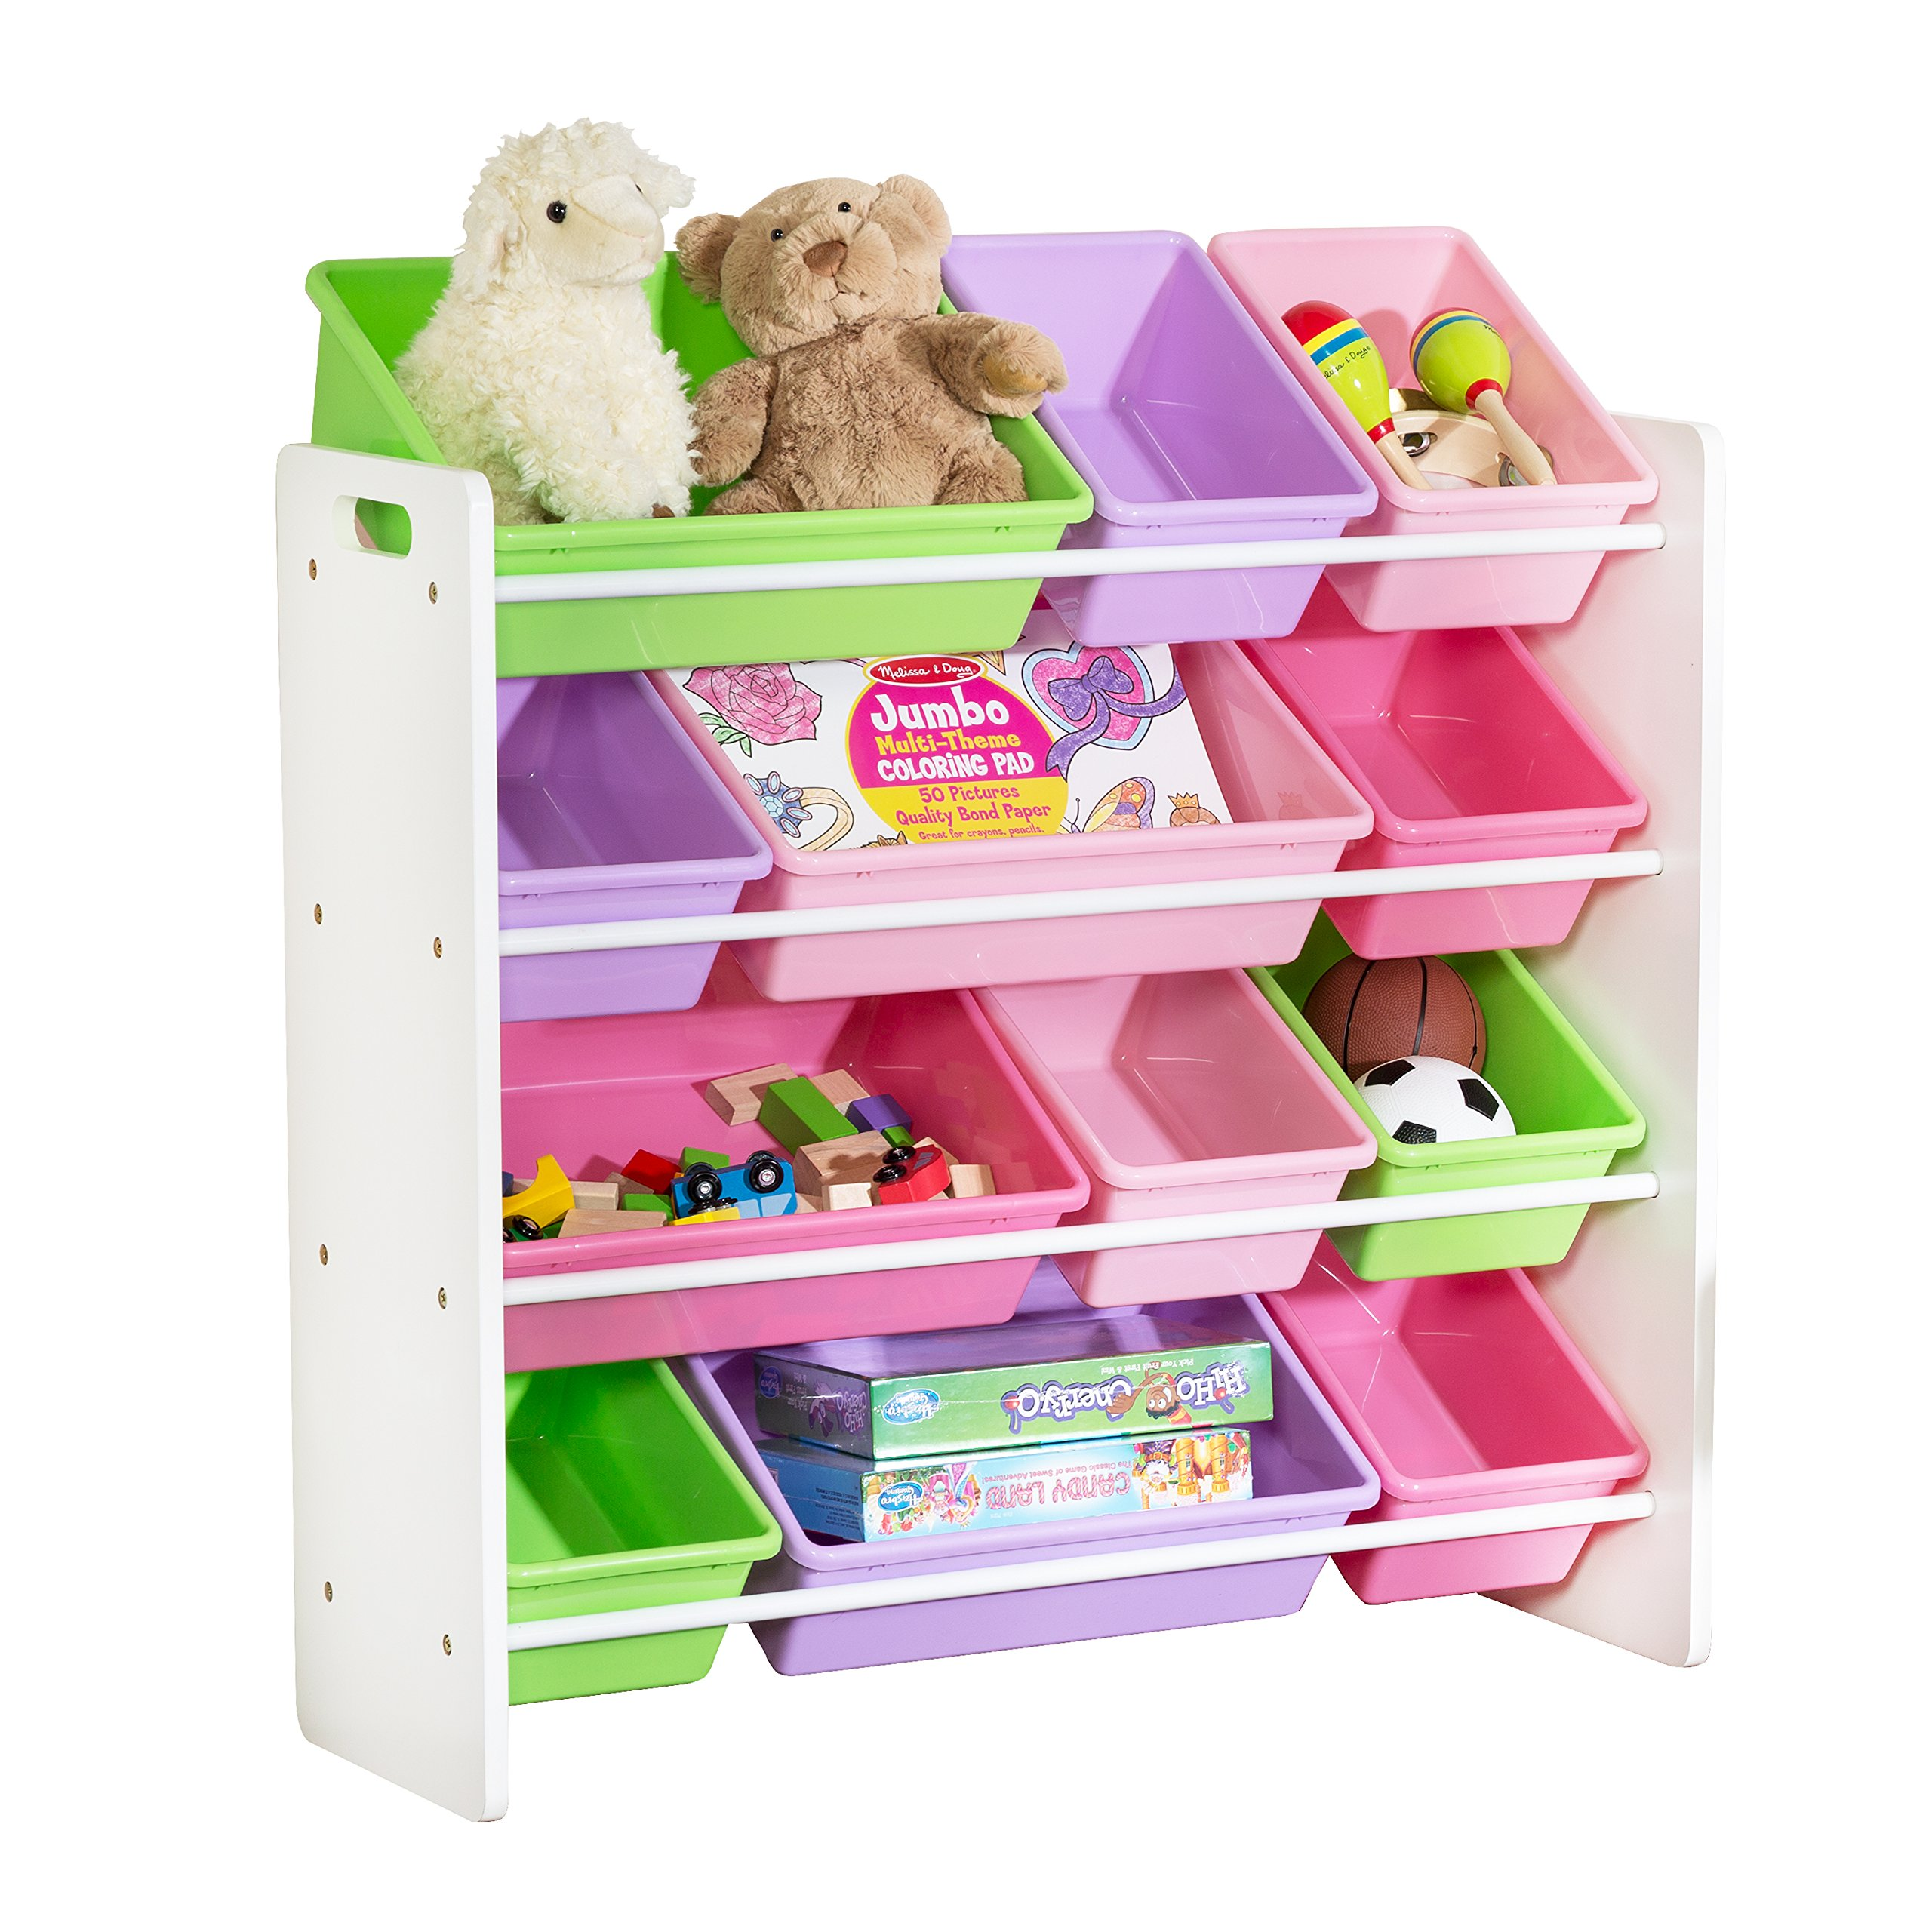 Honey-Can-Do SRT-01603 Kids Toy Organizer and Storage Bins, White/Pastel by Honey-Can-Do